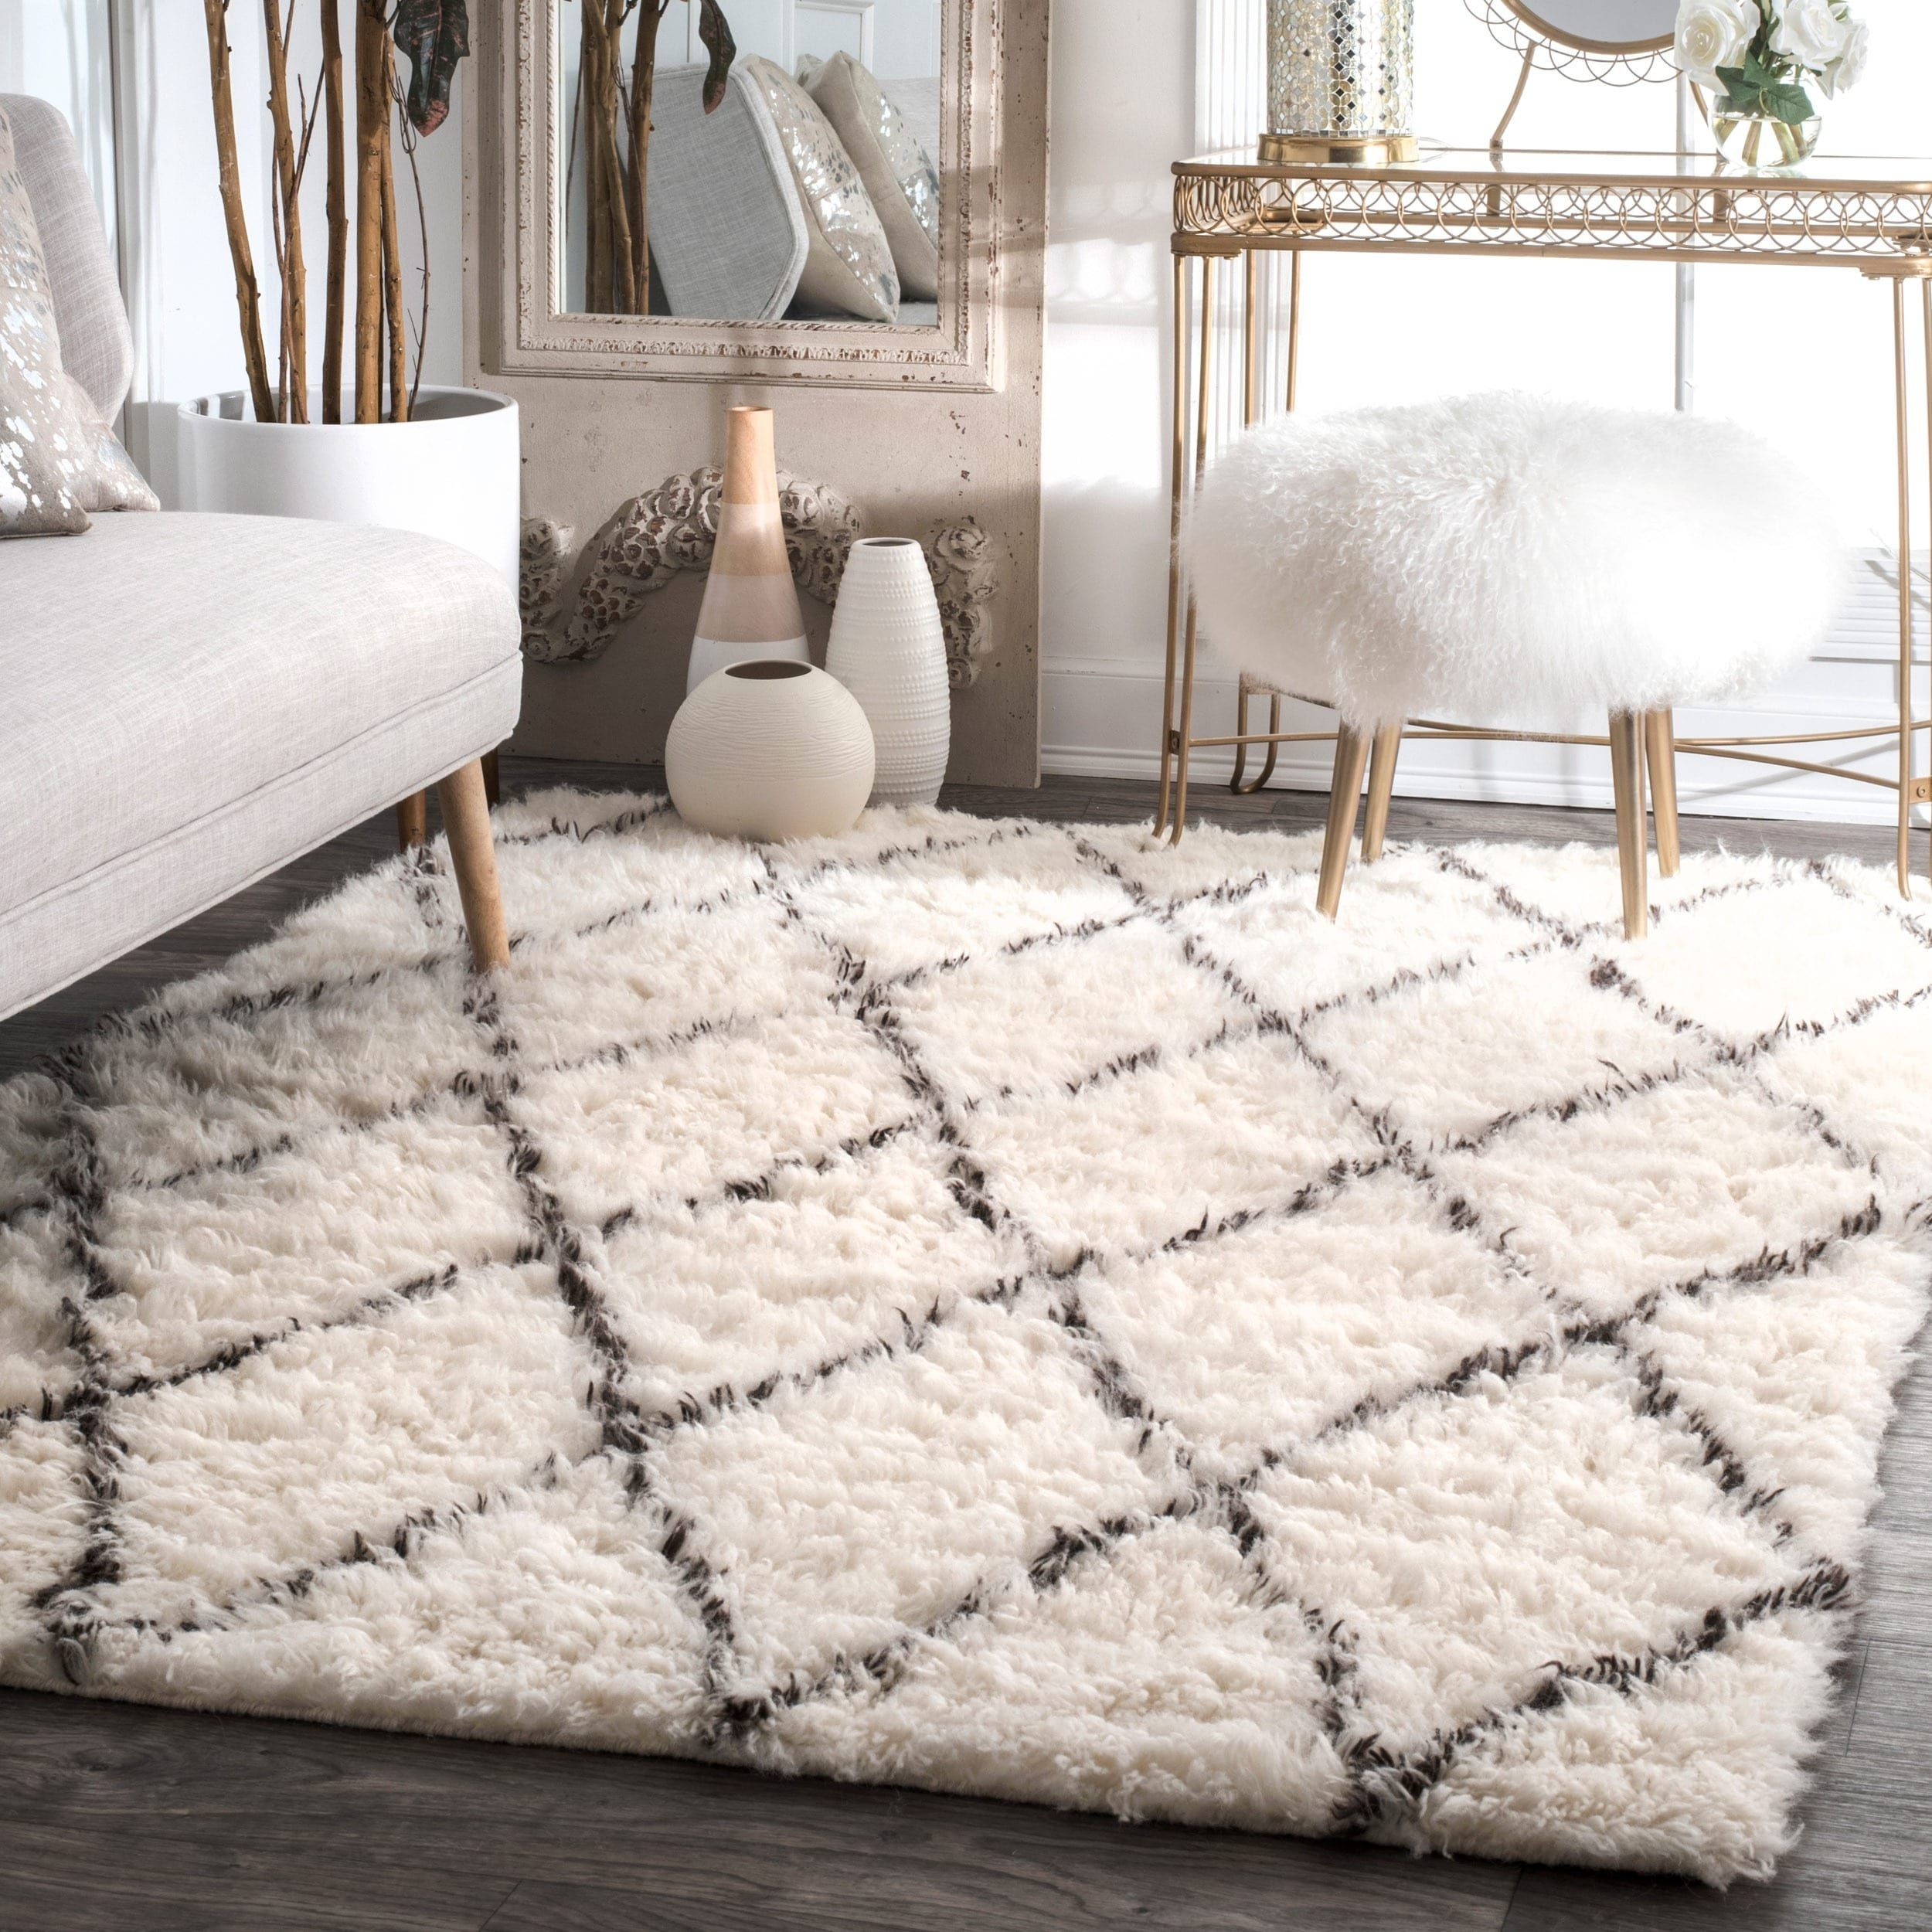 Nuloom Handmade Moroccan Style New Zealand Wool Rug Ping